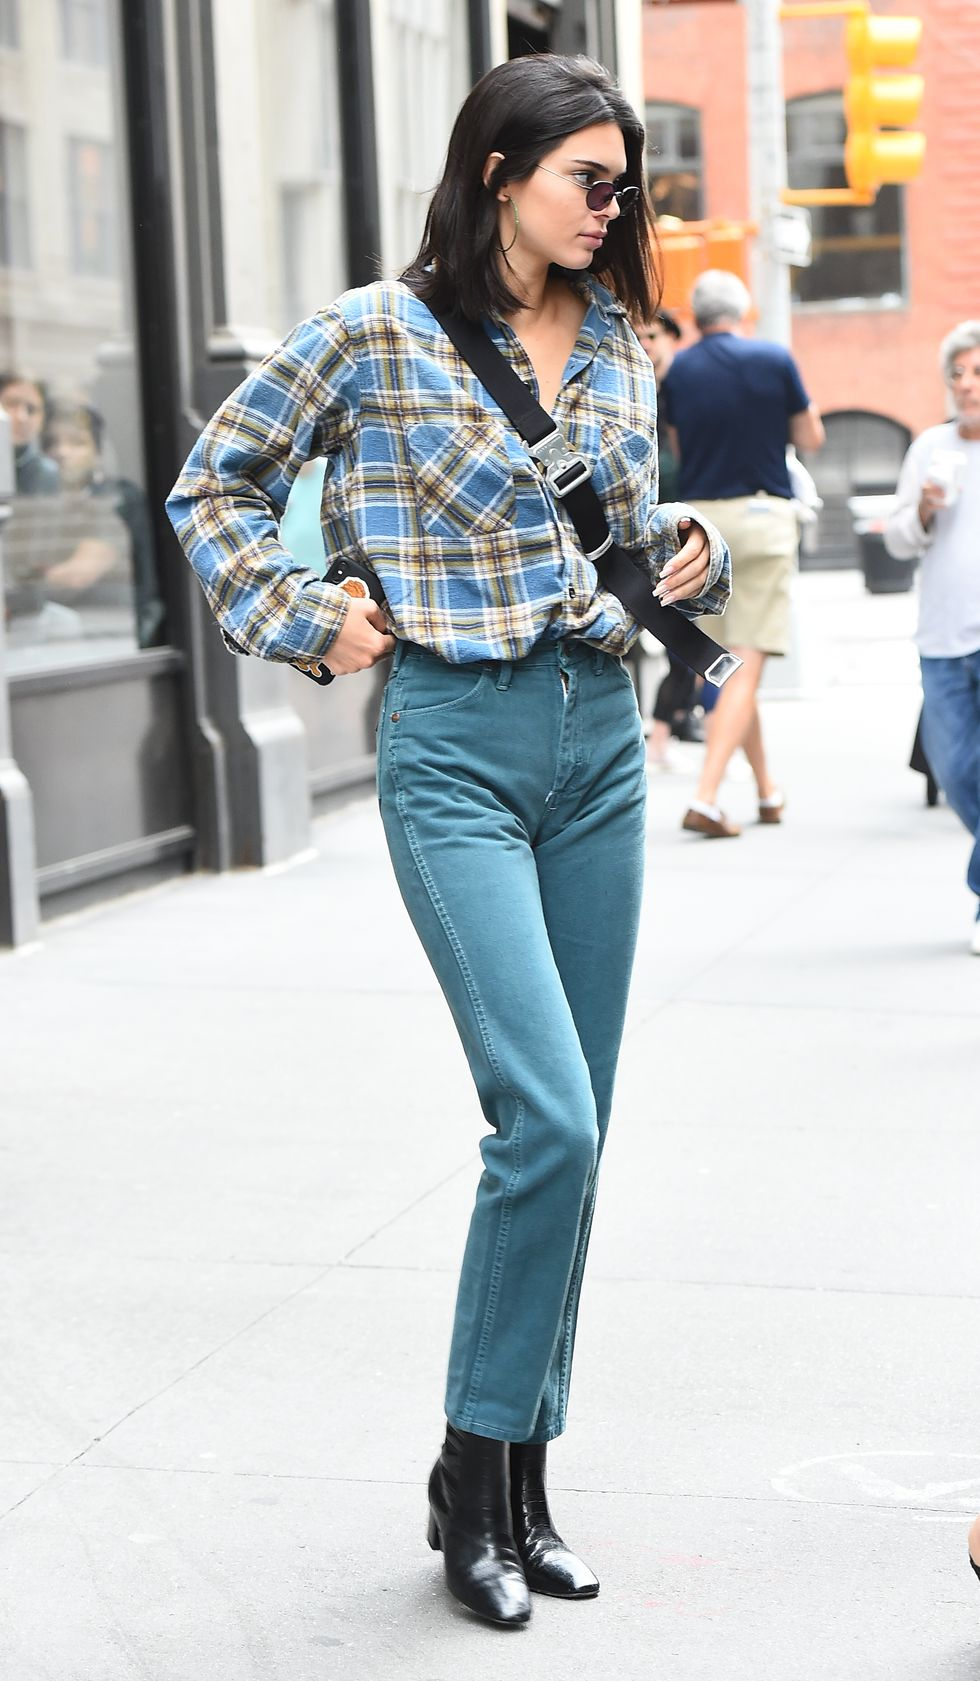 June 5, 2018 Kendall left the Broken Coconut in New York City in a plaid button-down shirt and teal-colored jeans.